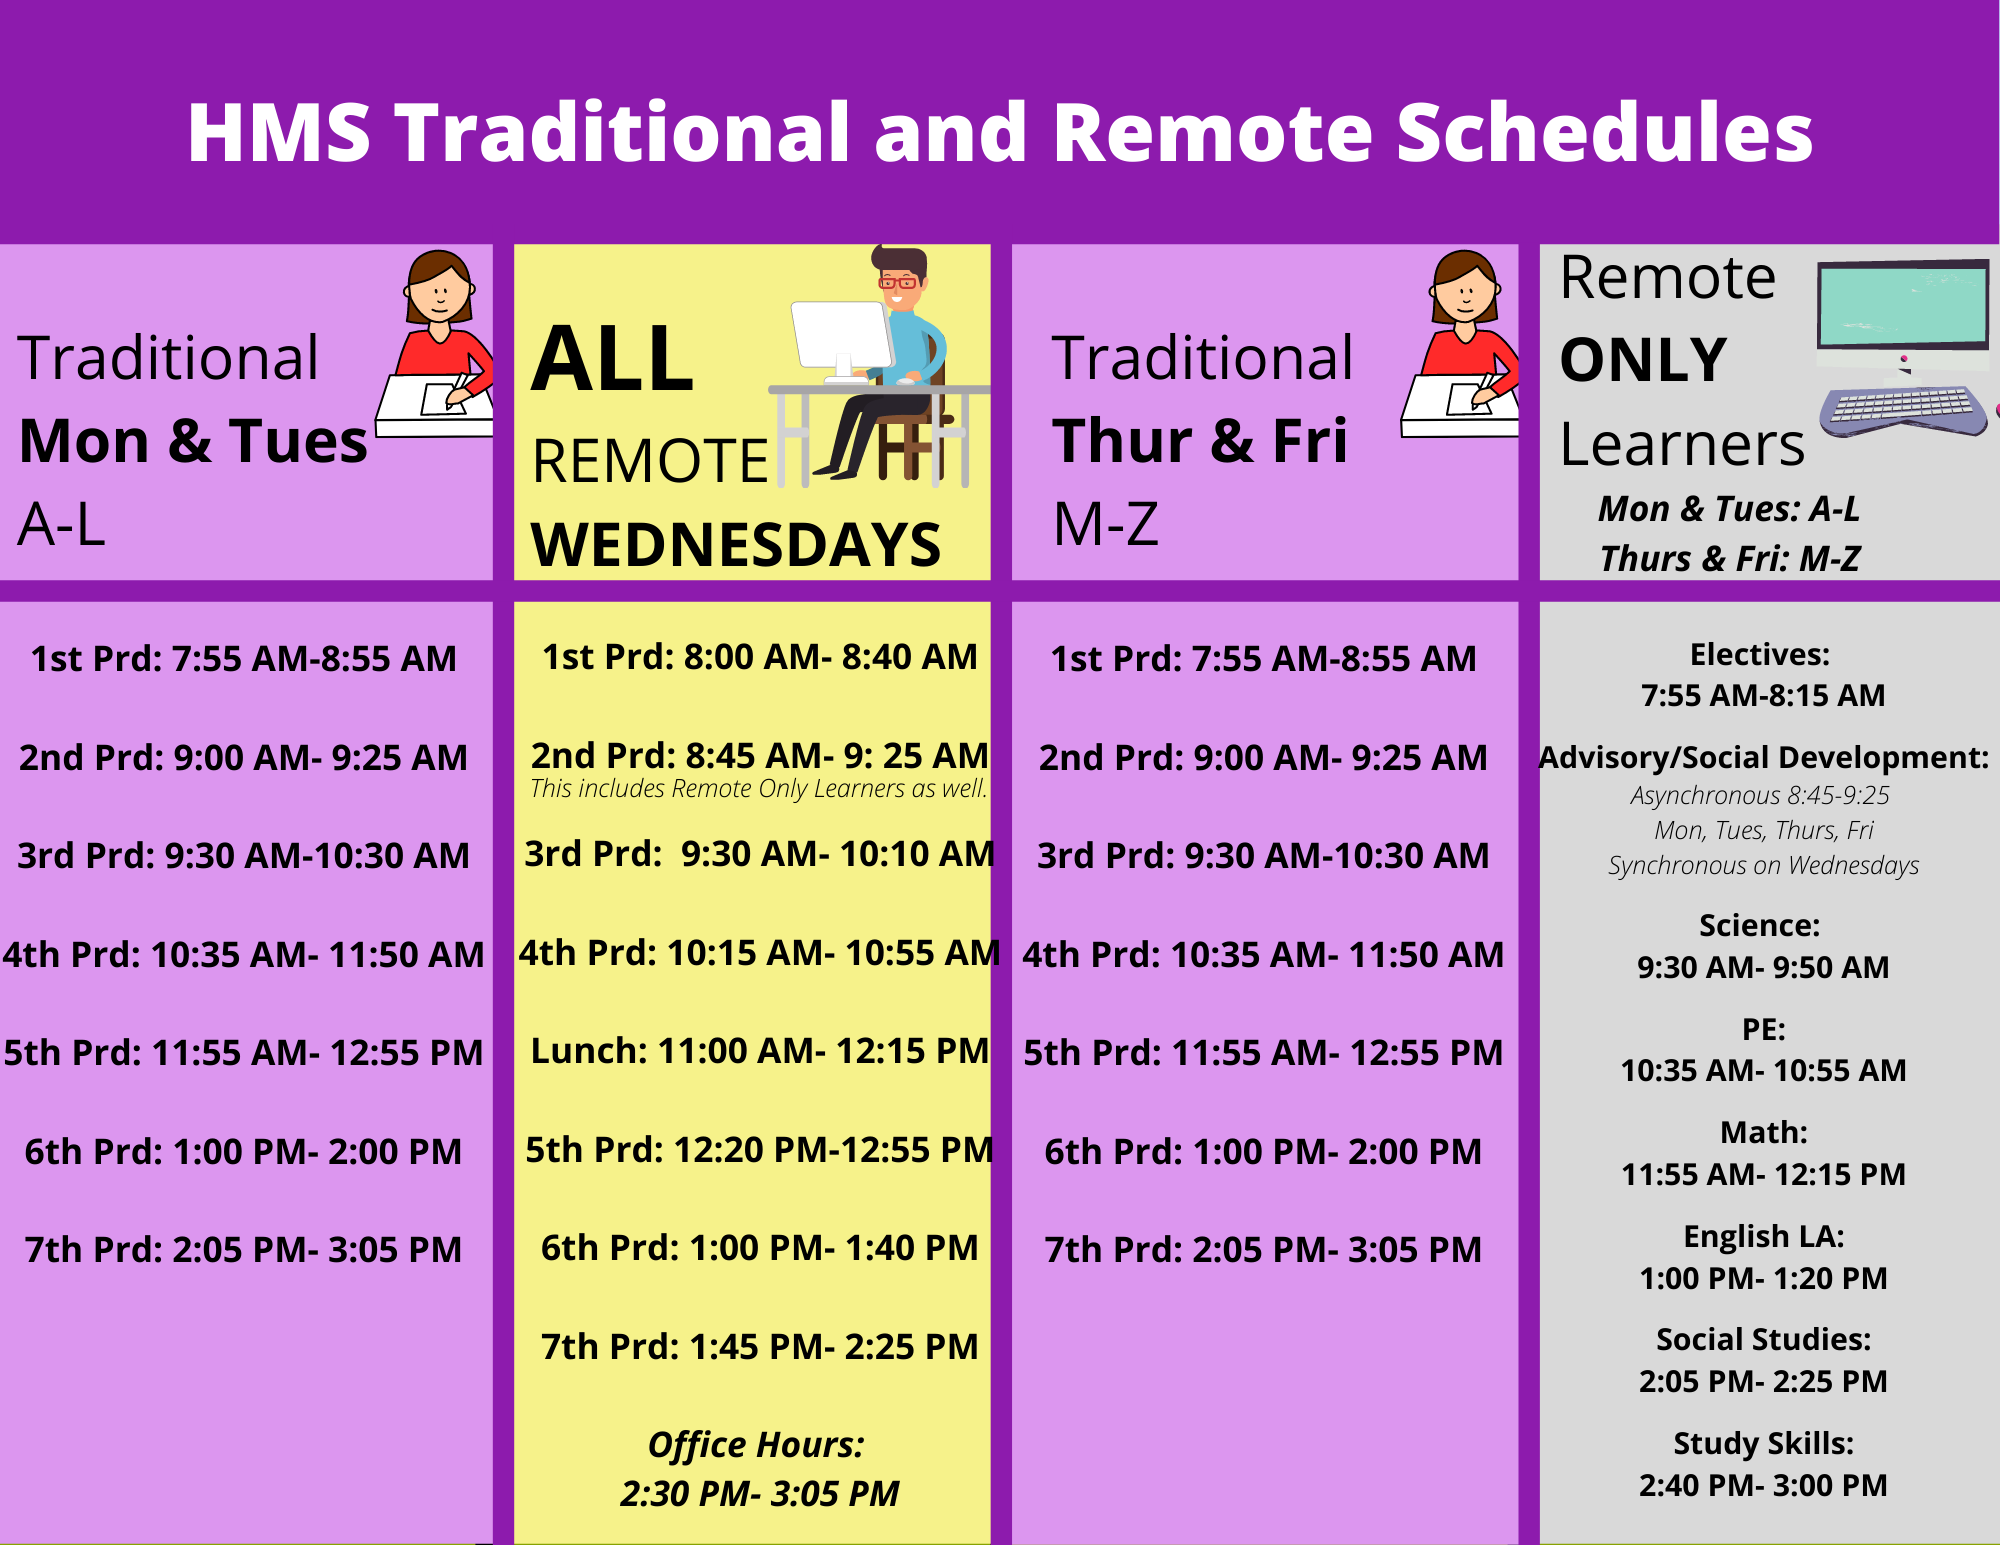 HMS Traditional and Remote Schedules